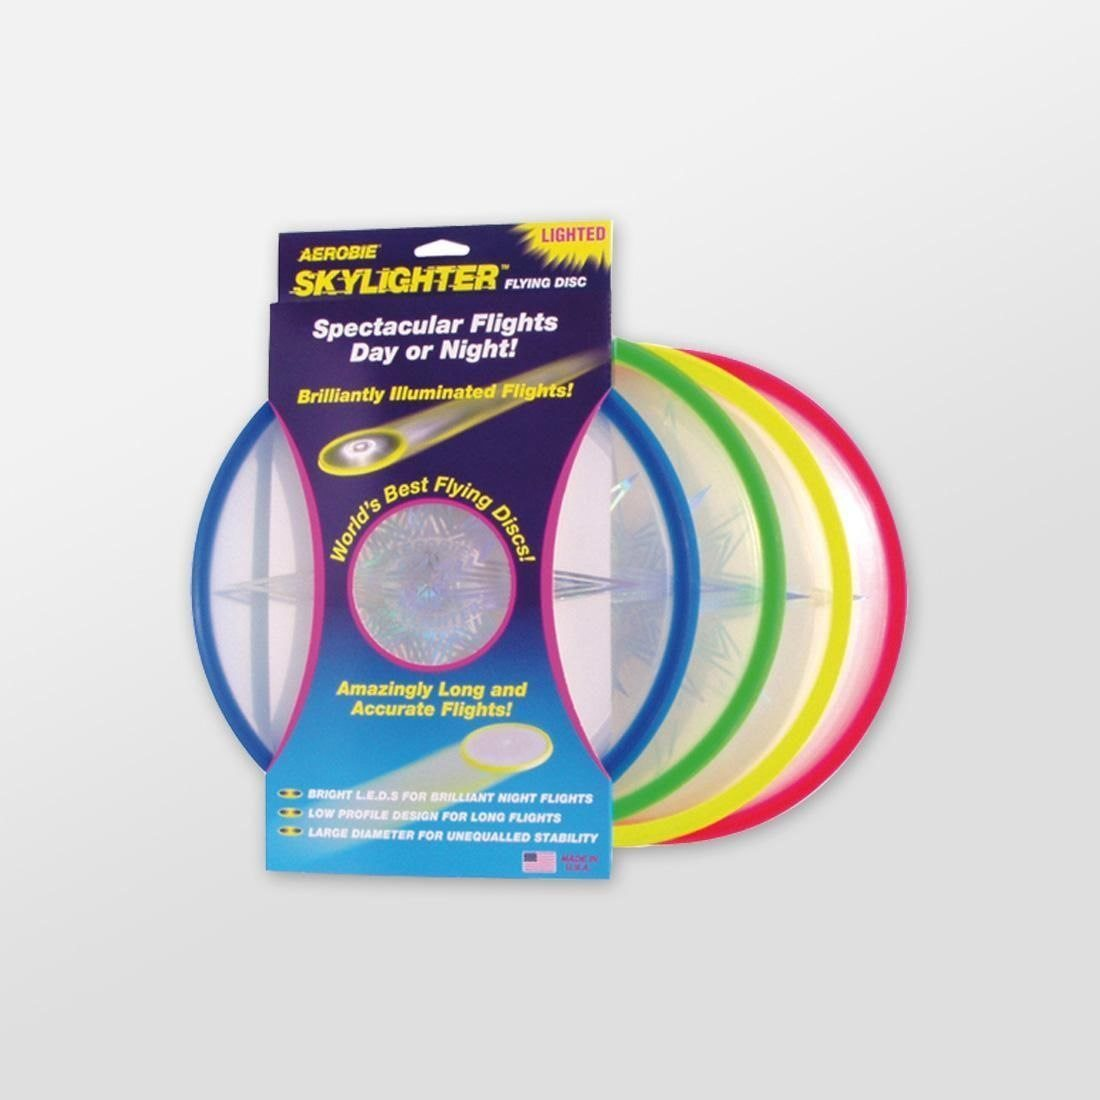 Skyligher LED Frisbee